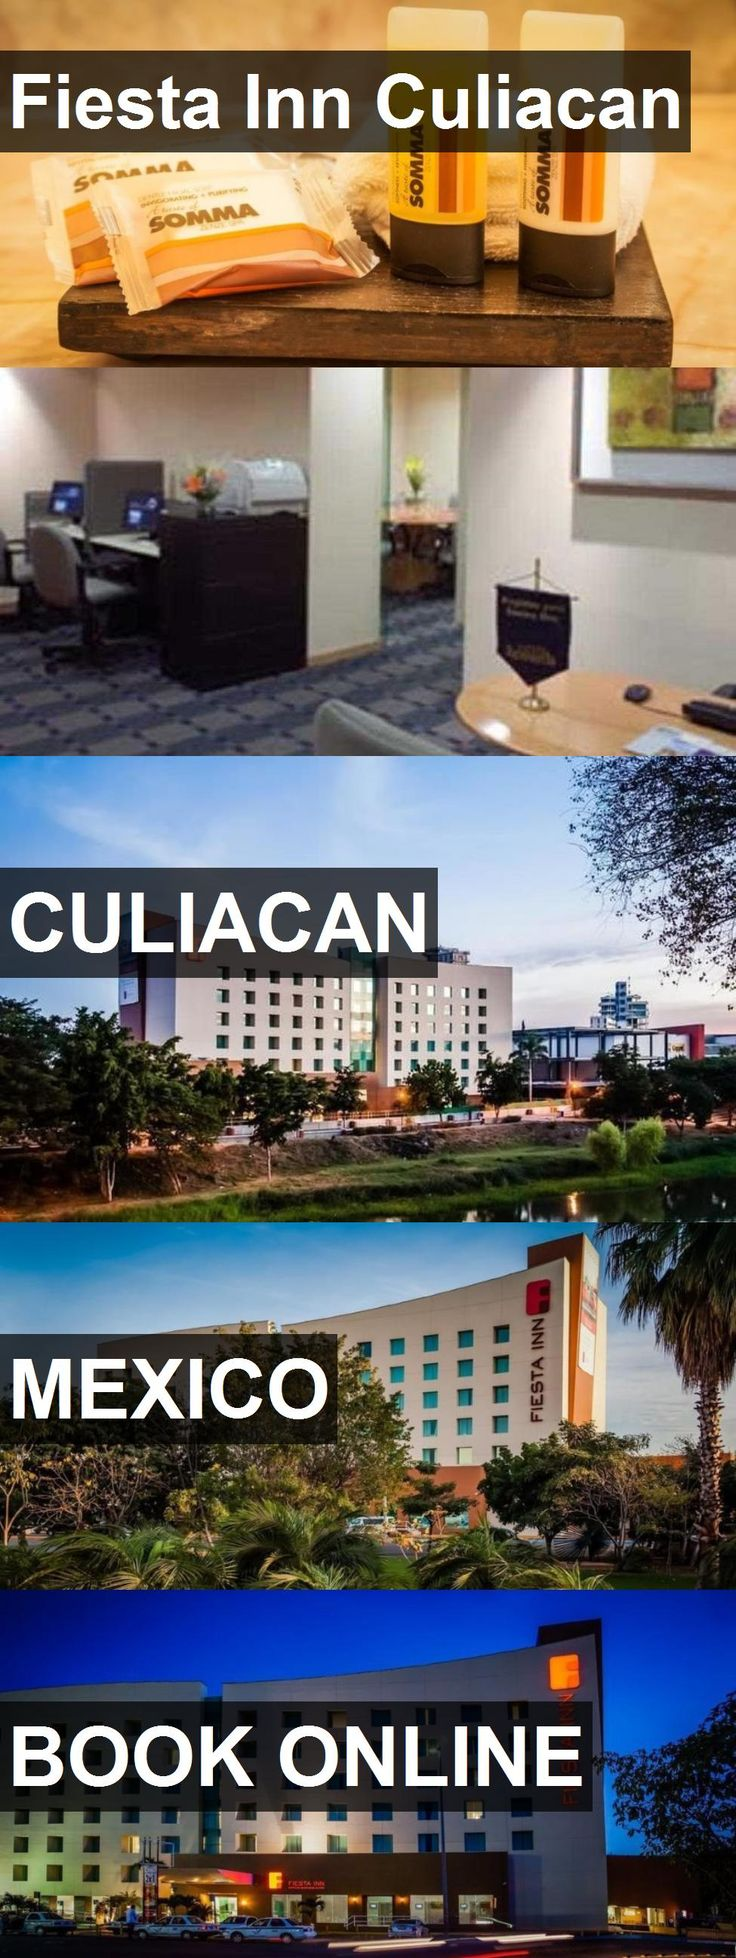 Hotel Fiesta Inn Culiacan in Culiacan, Mexico. For more information, photos, reviews and best prices please follow the link. #Mexico #Culiacan #FiestaInnCuliacan #hotel #travel #vacation